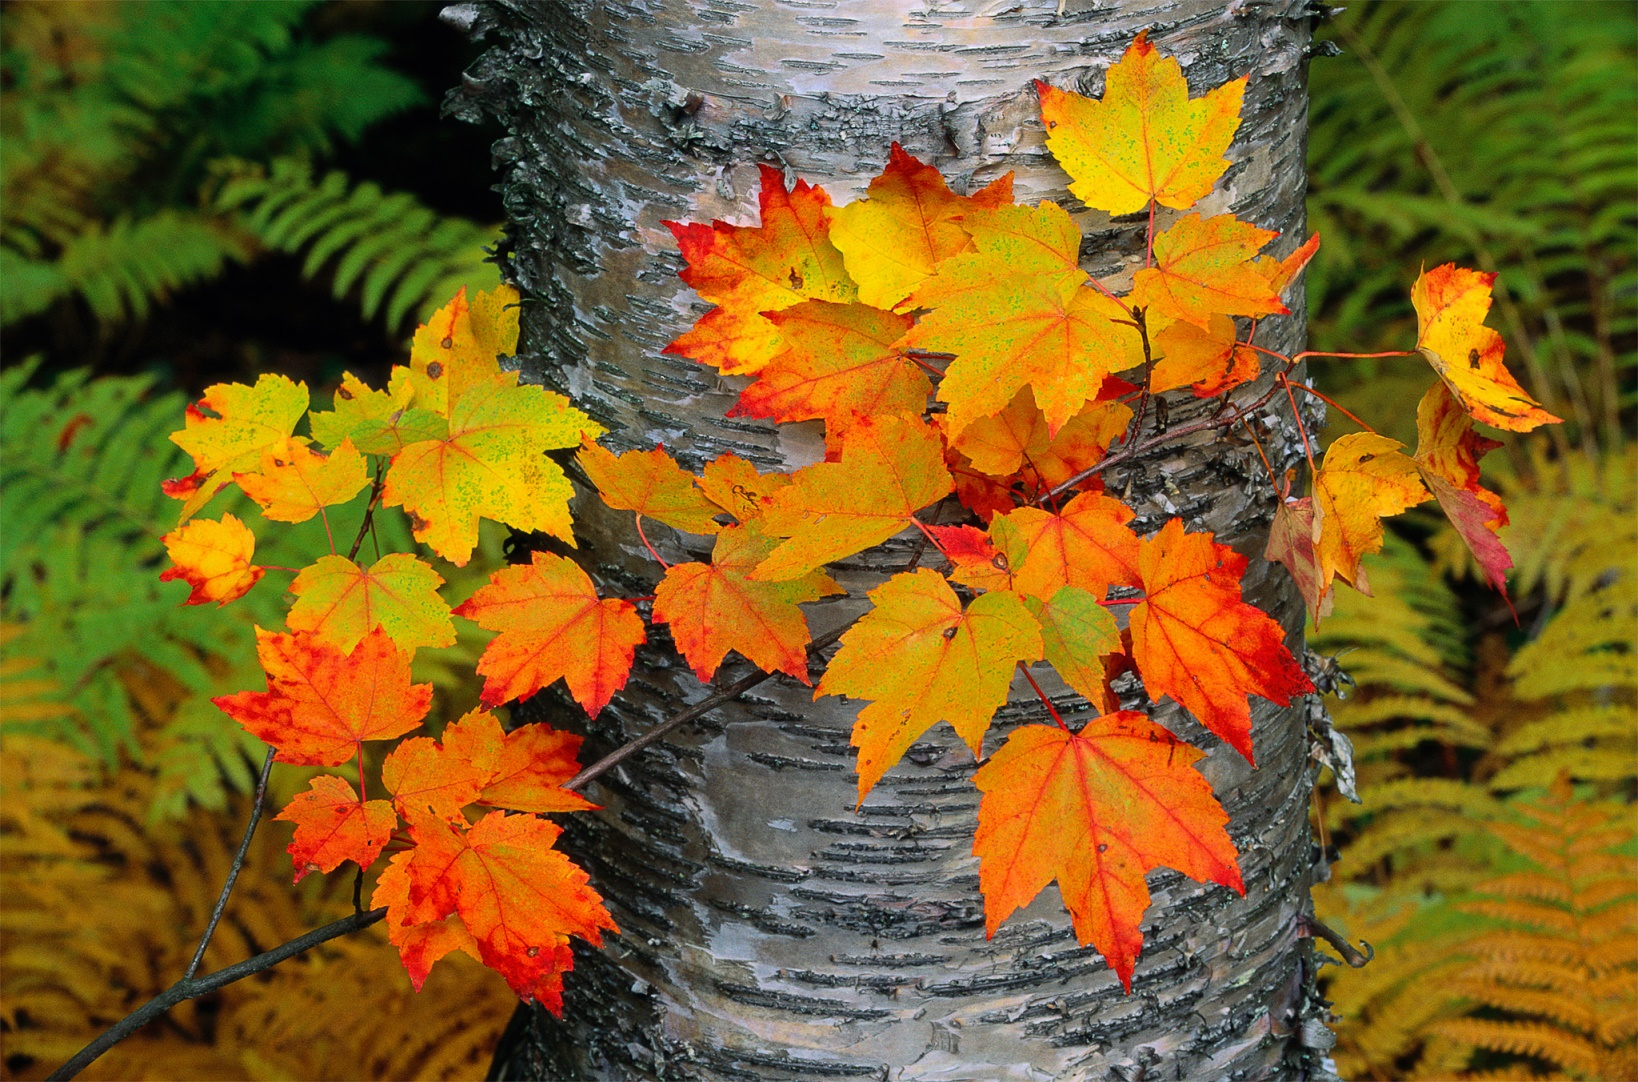 Sugar maple leaves set against the trunk of a yellow birch tree.